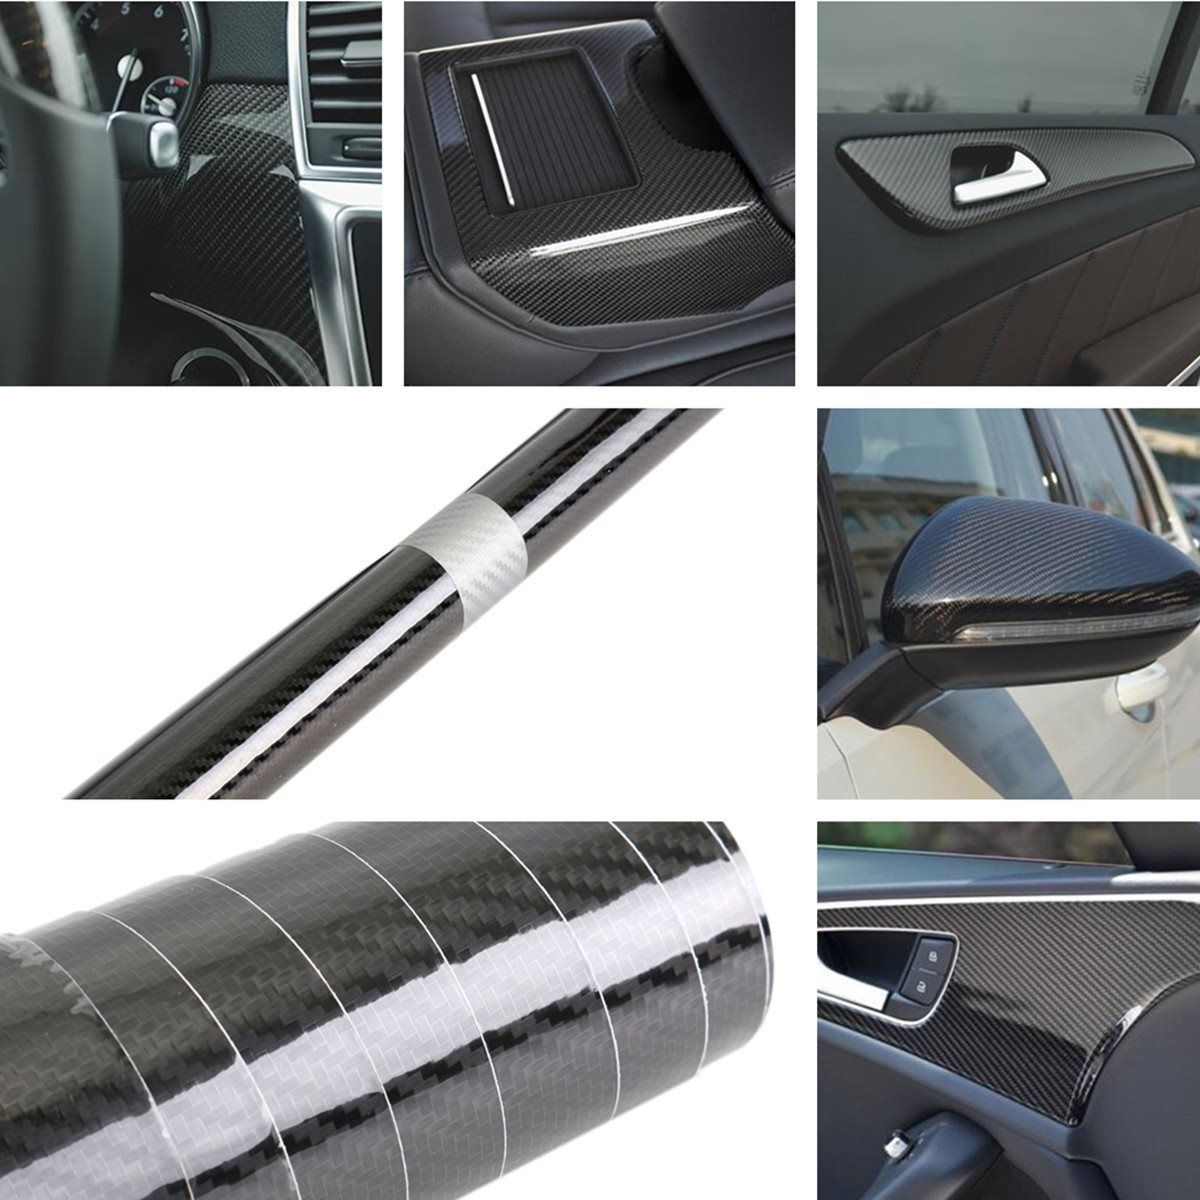 hoogglans pvc 5d carbon vinyl folie film auto wrap roll sticker decal zwart 35150 cm interieur accessoires auto styling